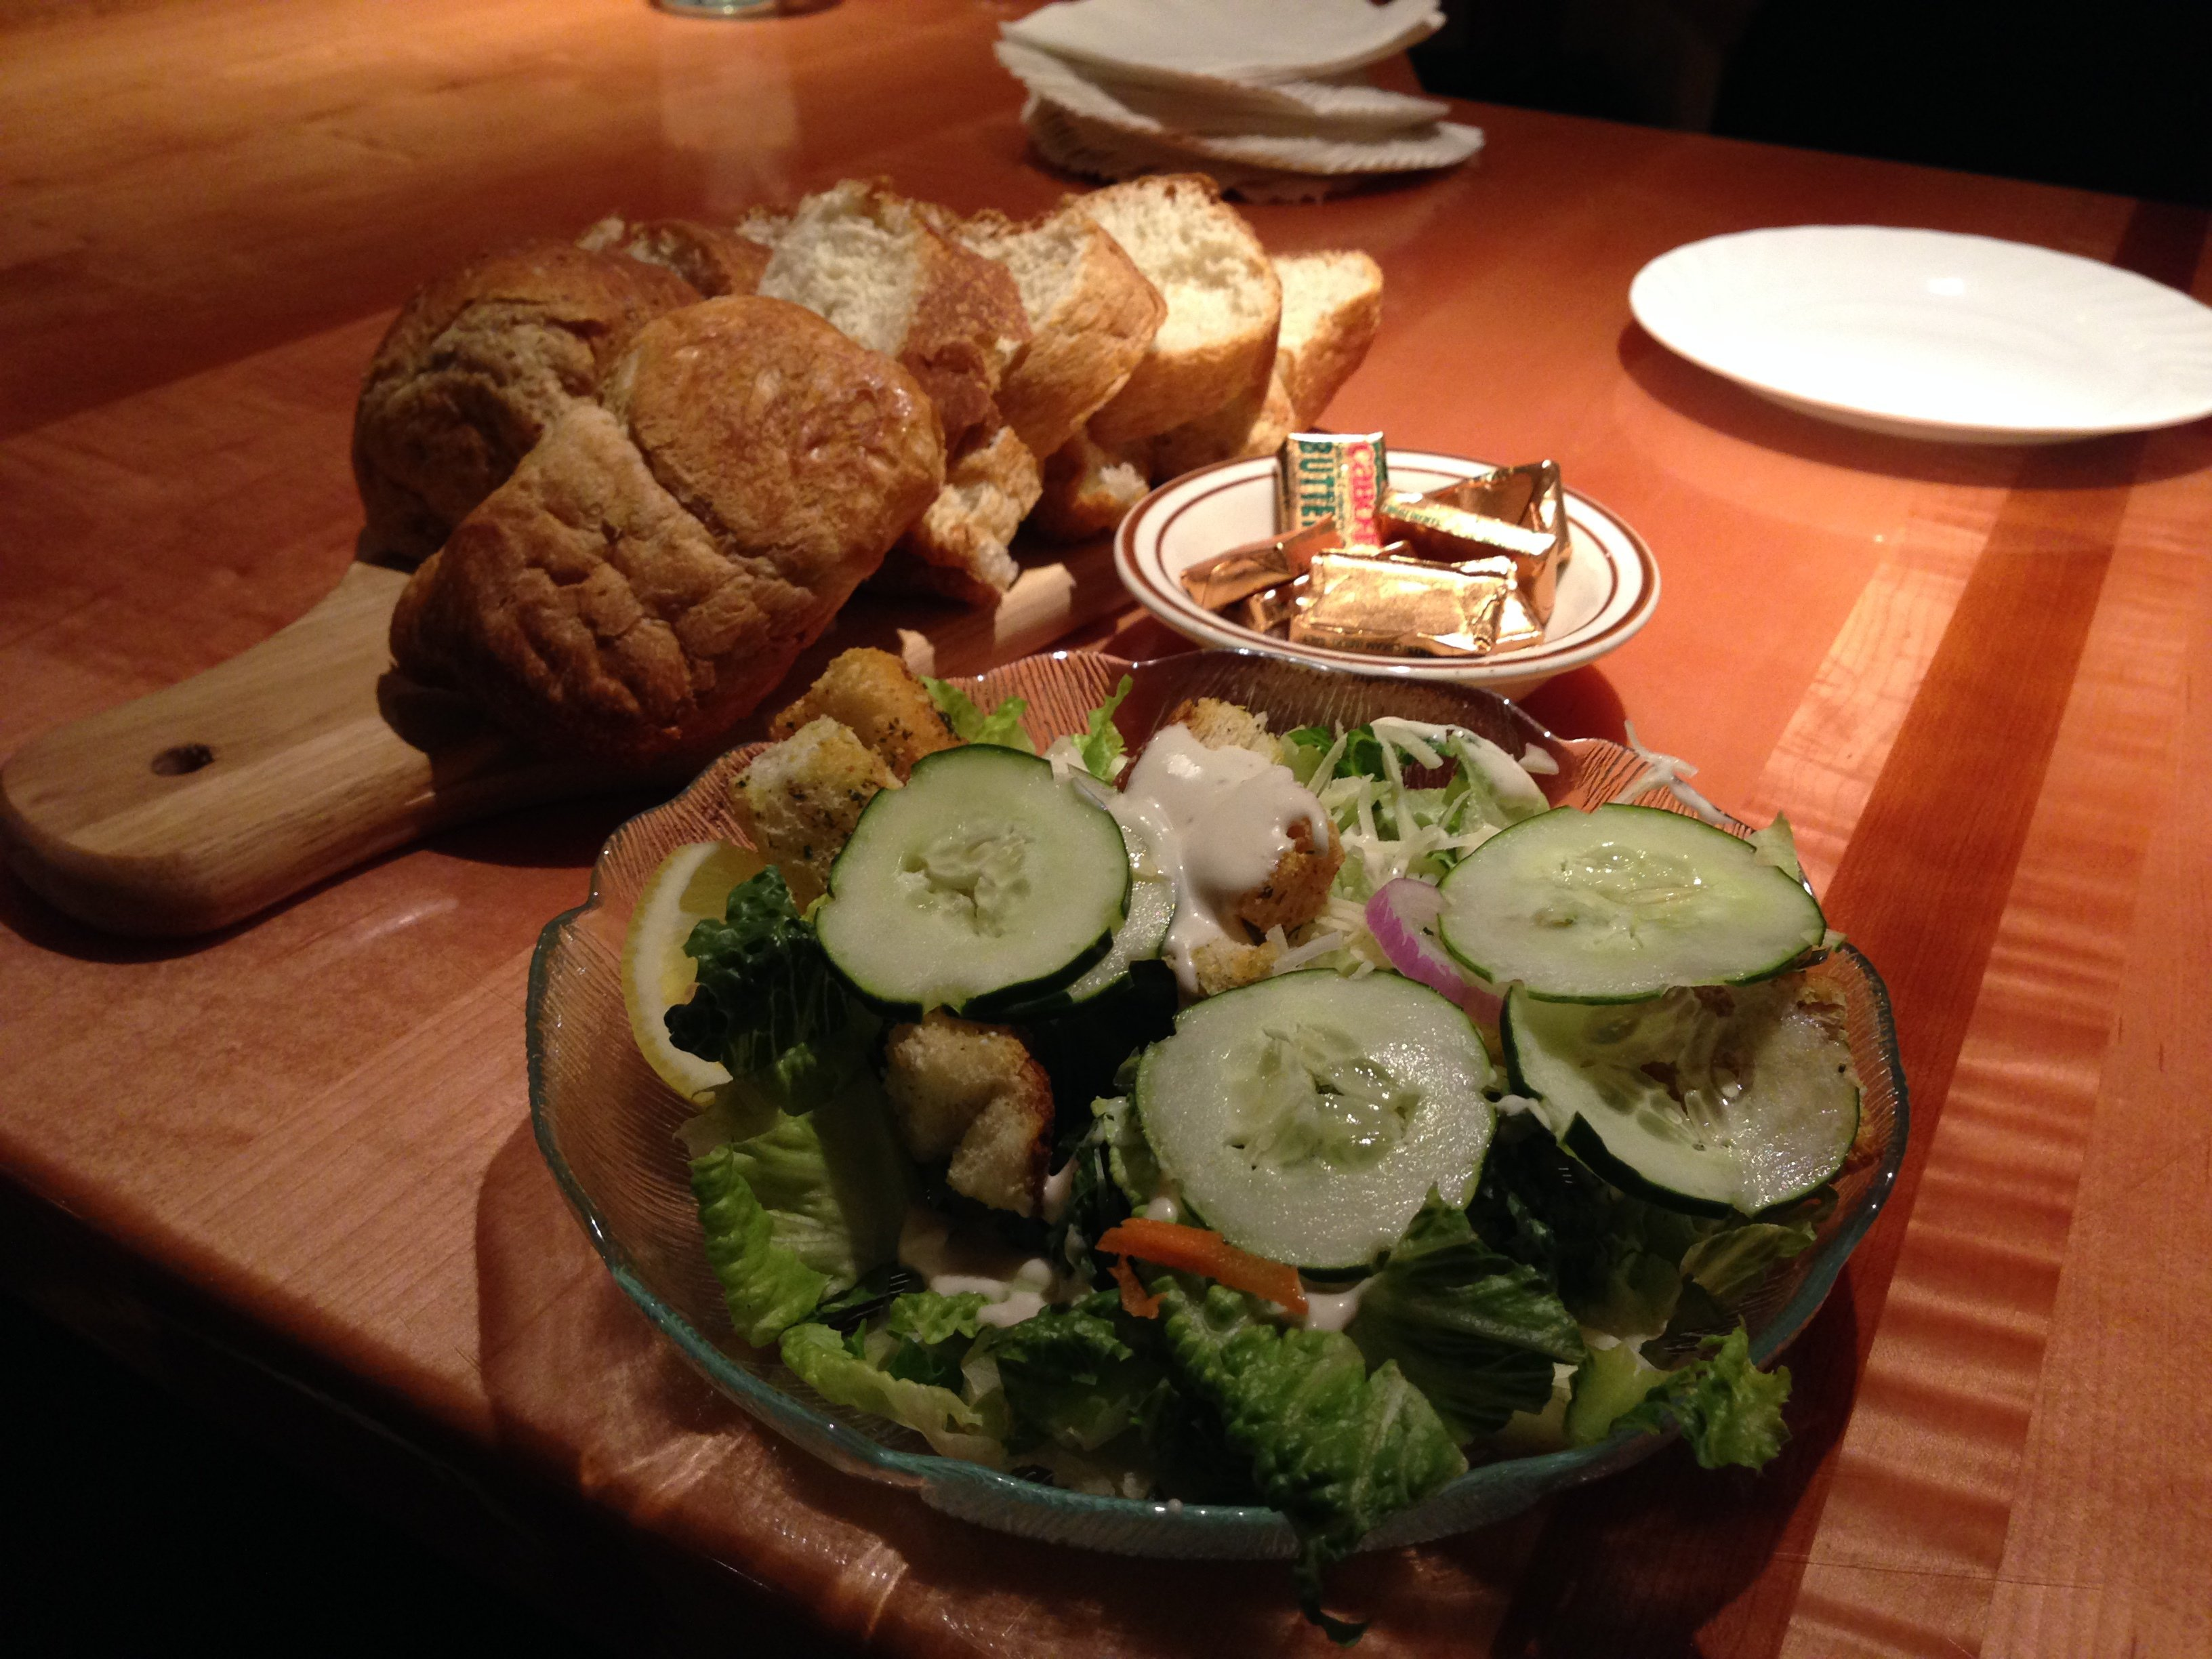 Charlmont Restaurant homemade bread and salad to go with your entree